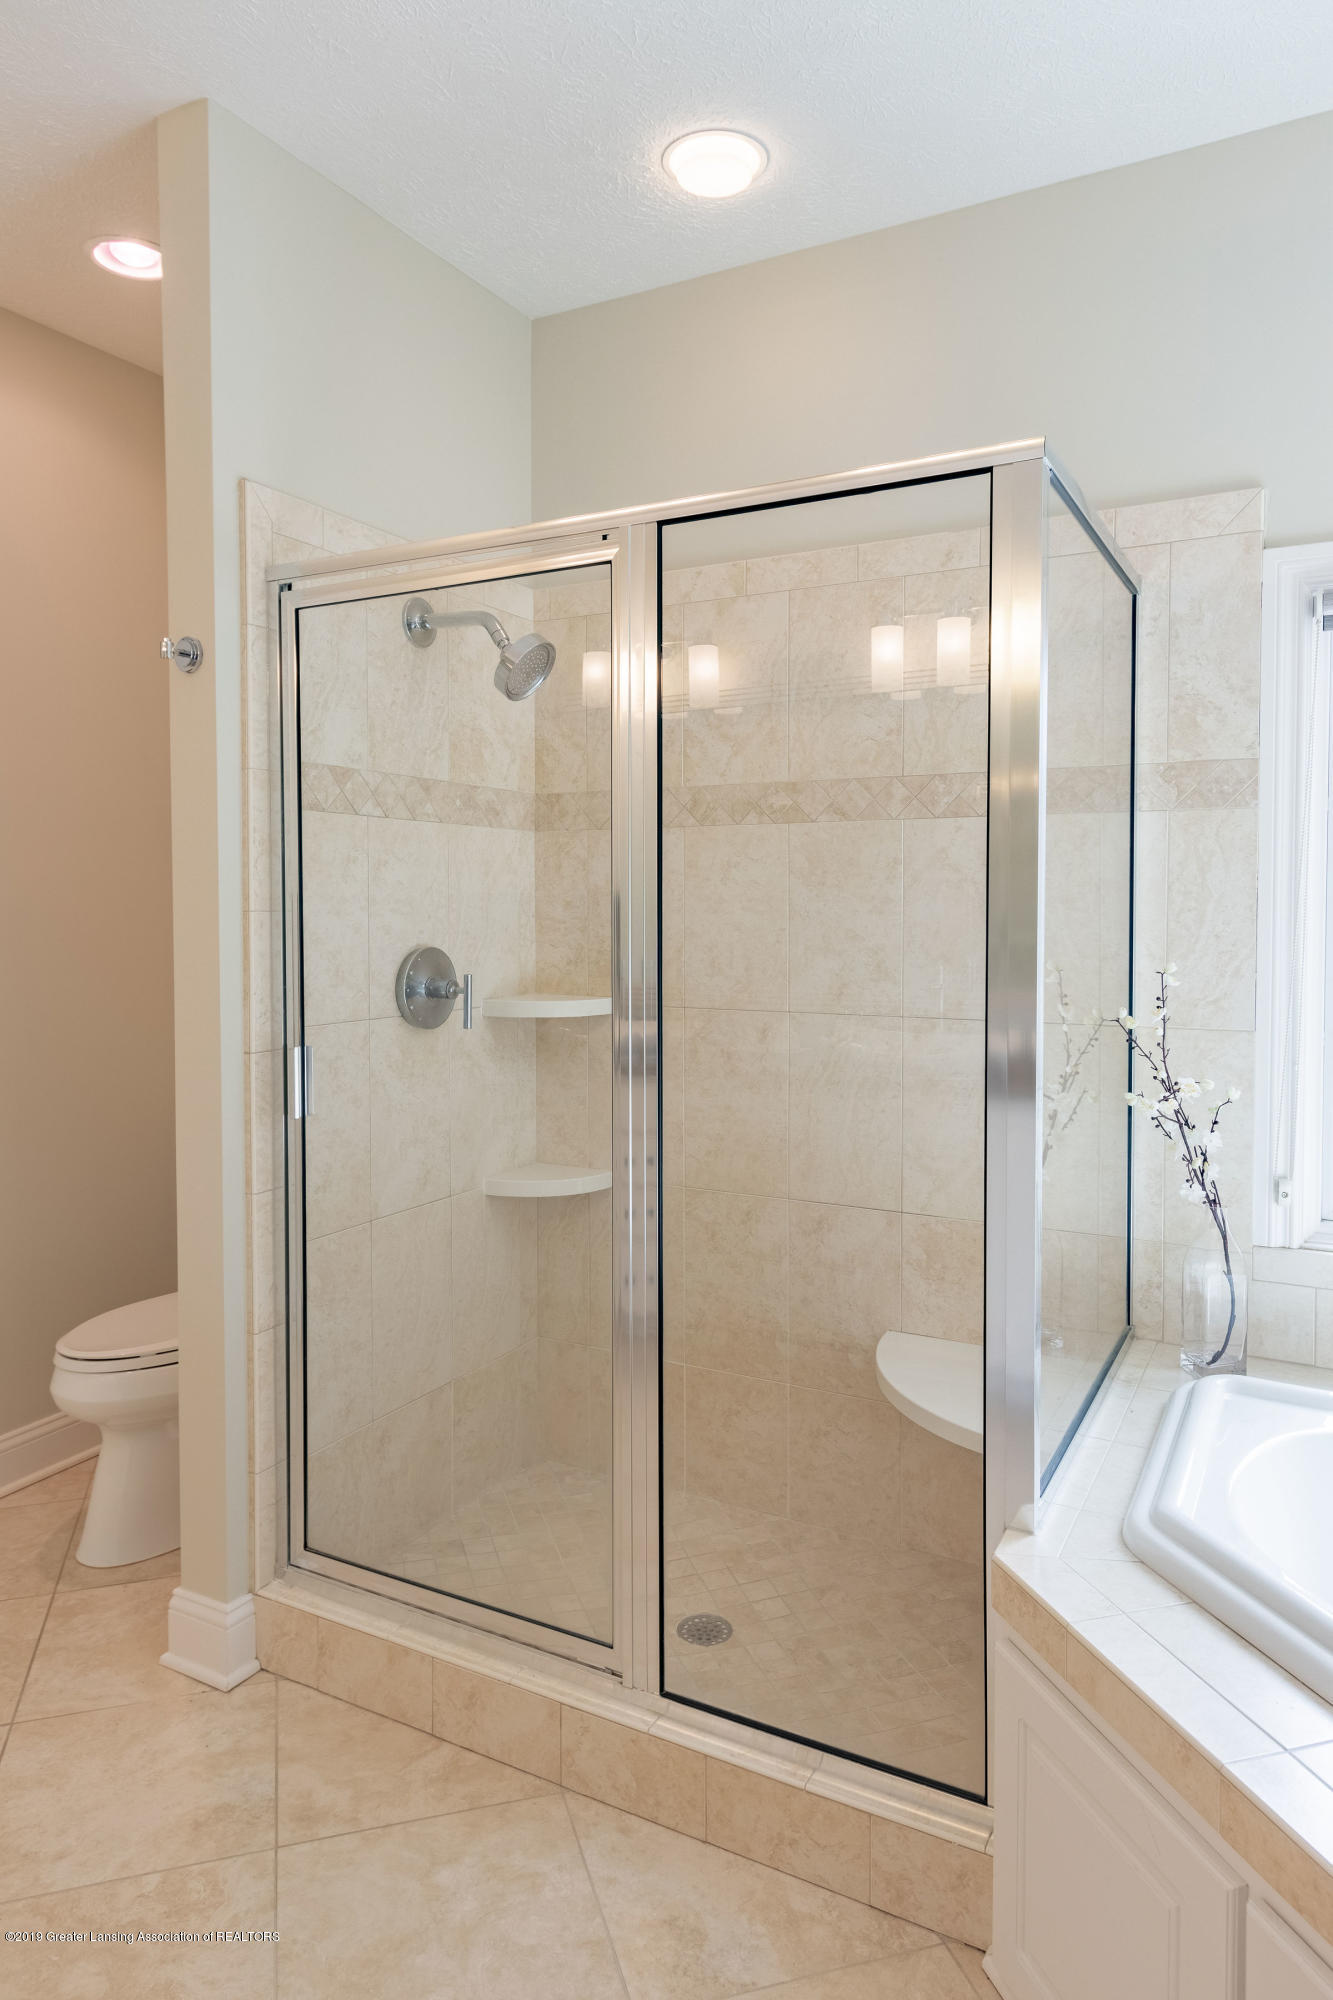 6153 Graebear Trail - Tiled Shower - 30